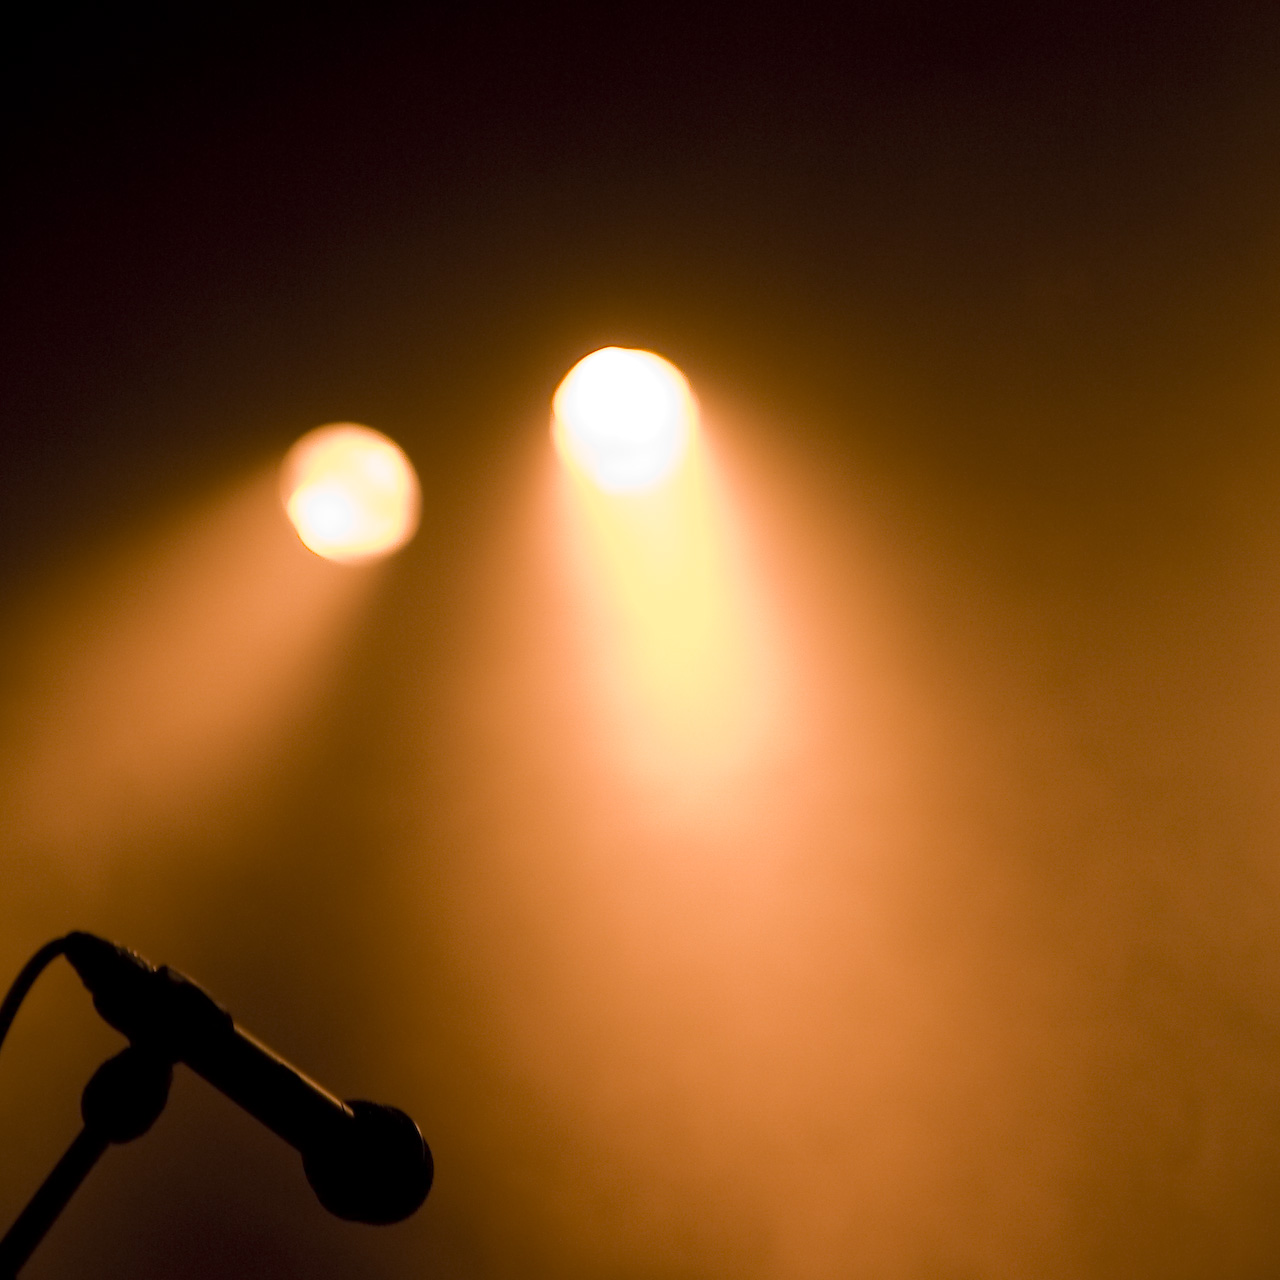 Microphone and Spotlights